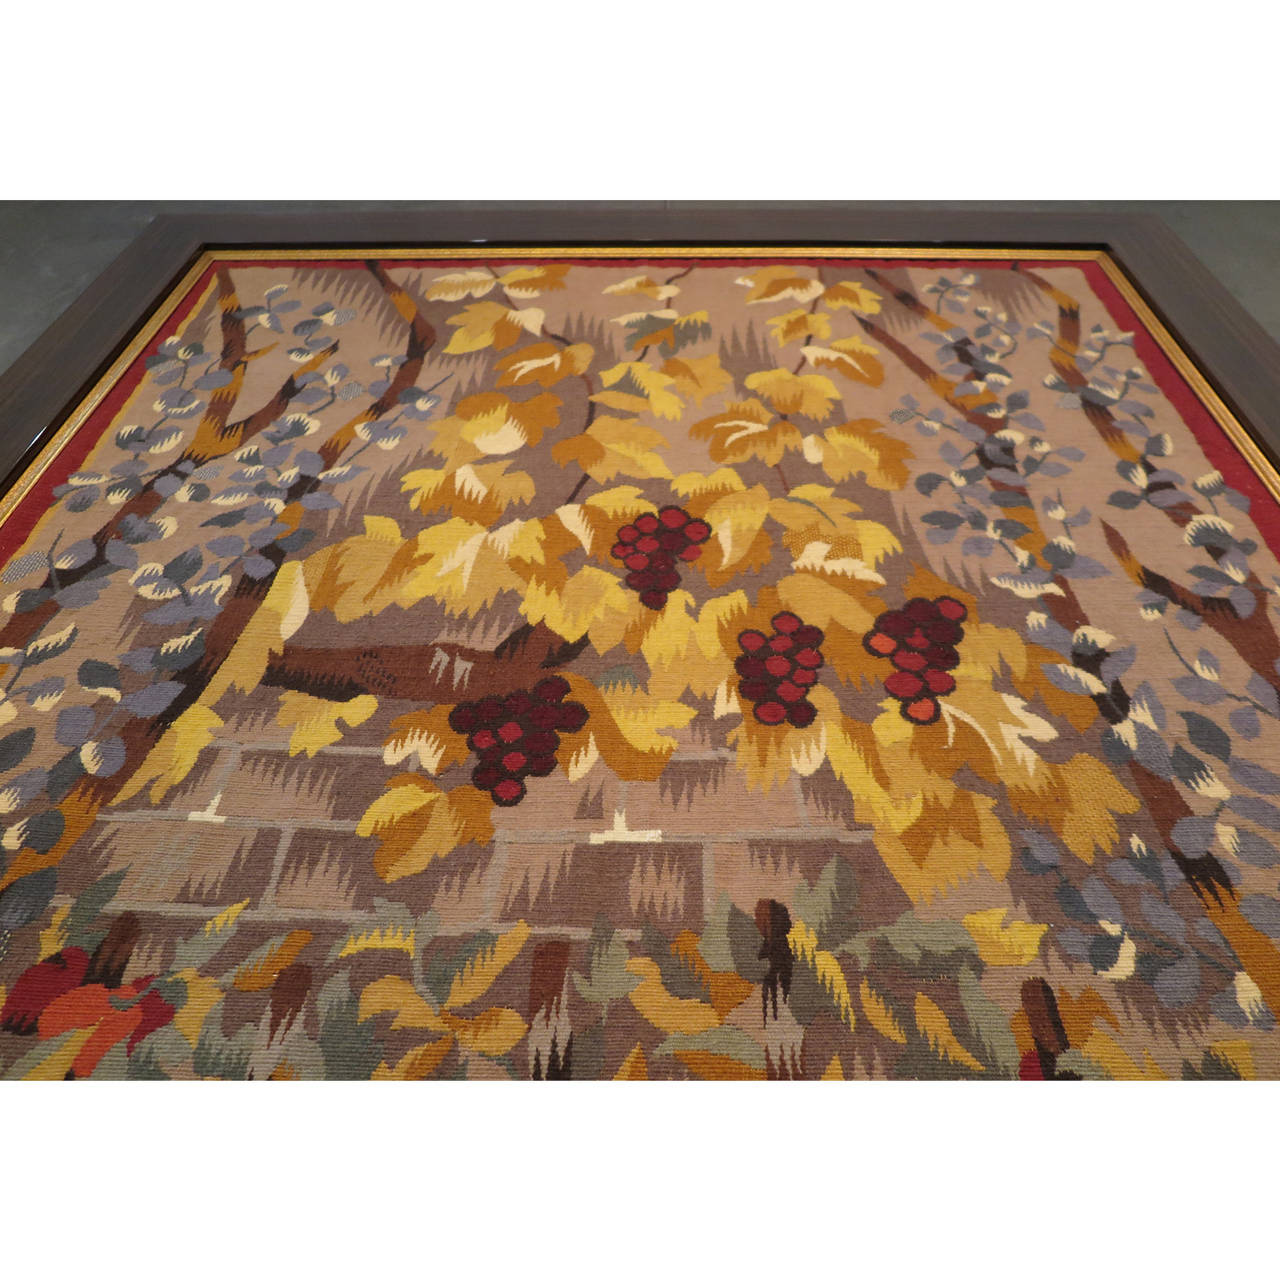 Harvest Aubusson Tapestry by Dubreuil In Excellent Condition For Sale In Los Angeles, CA